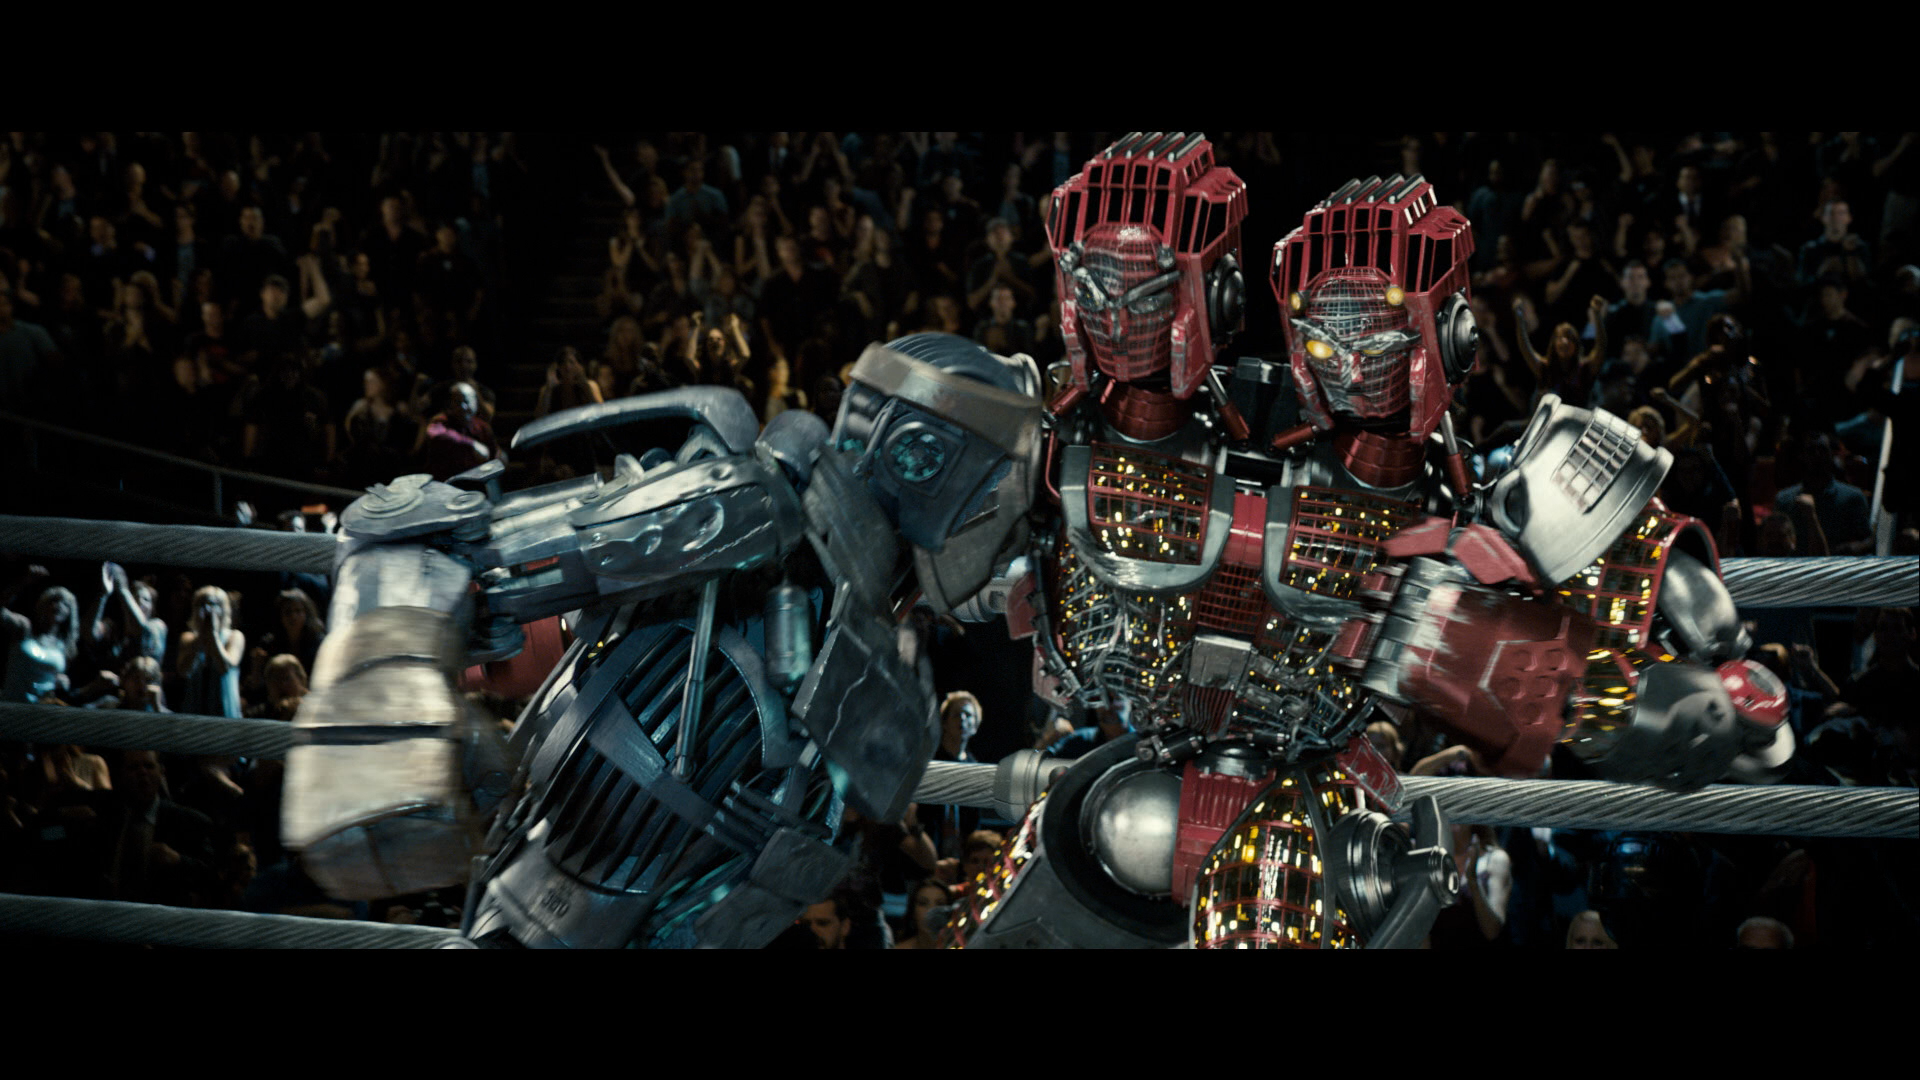 1337x Real Steel Full Movie Download 720p - Mary Zahid